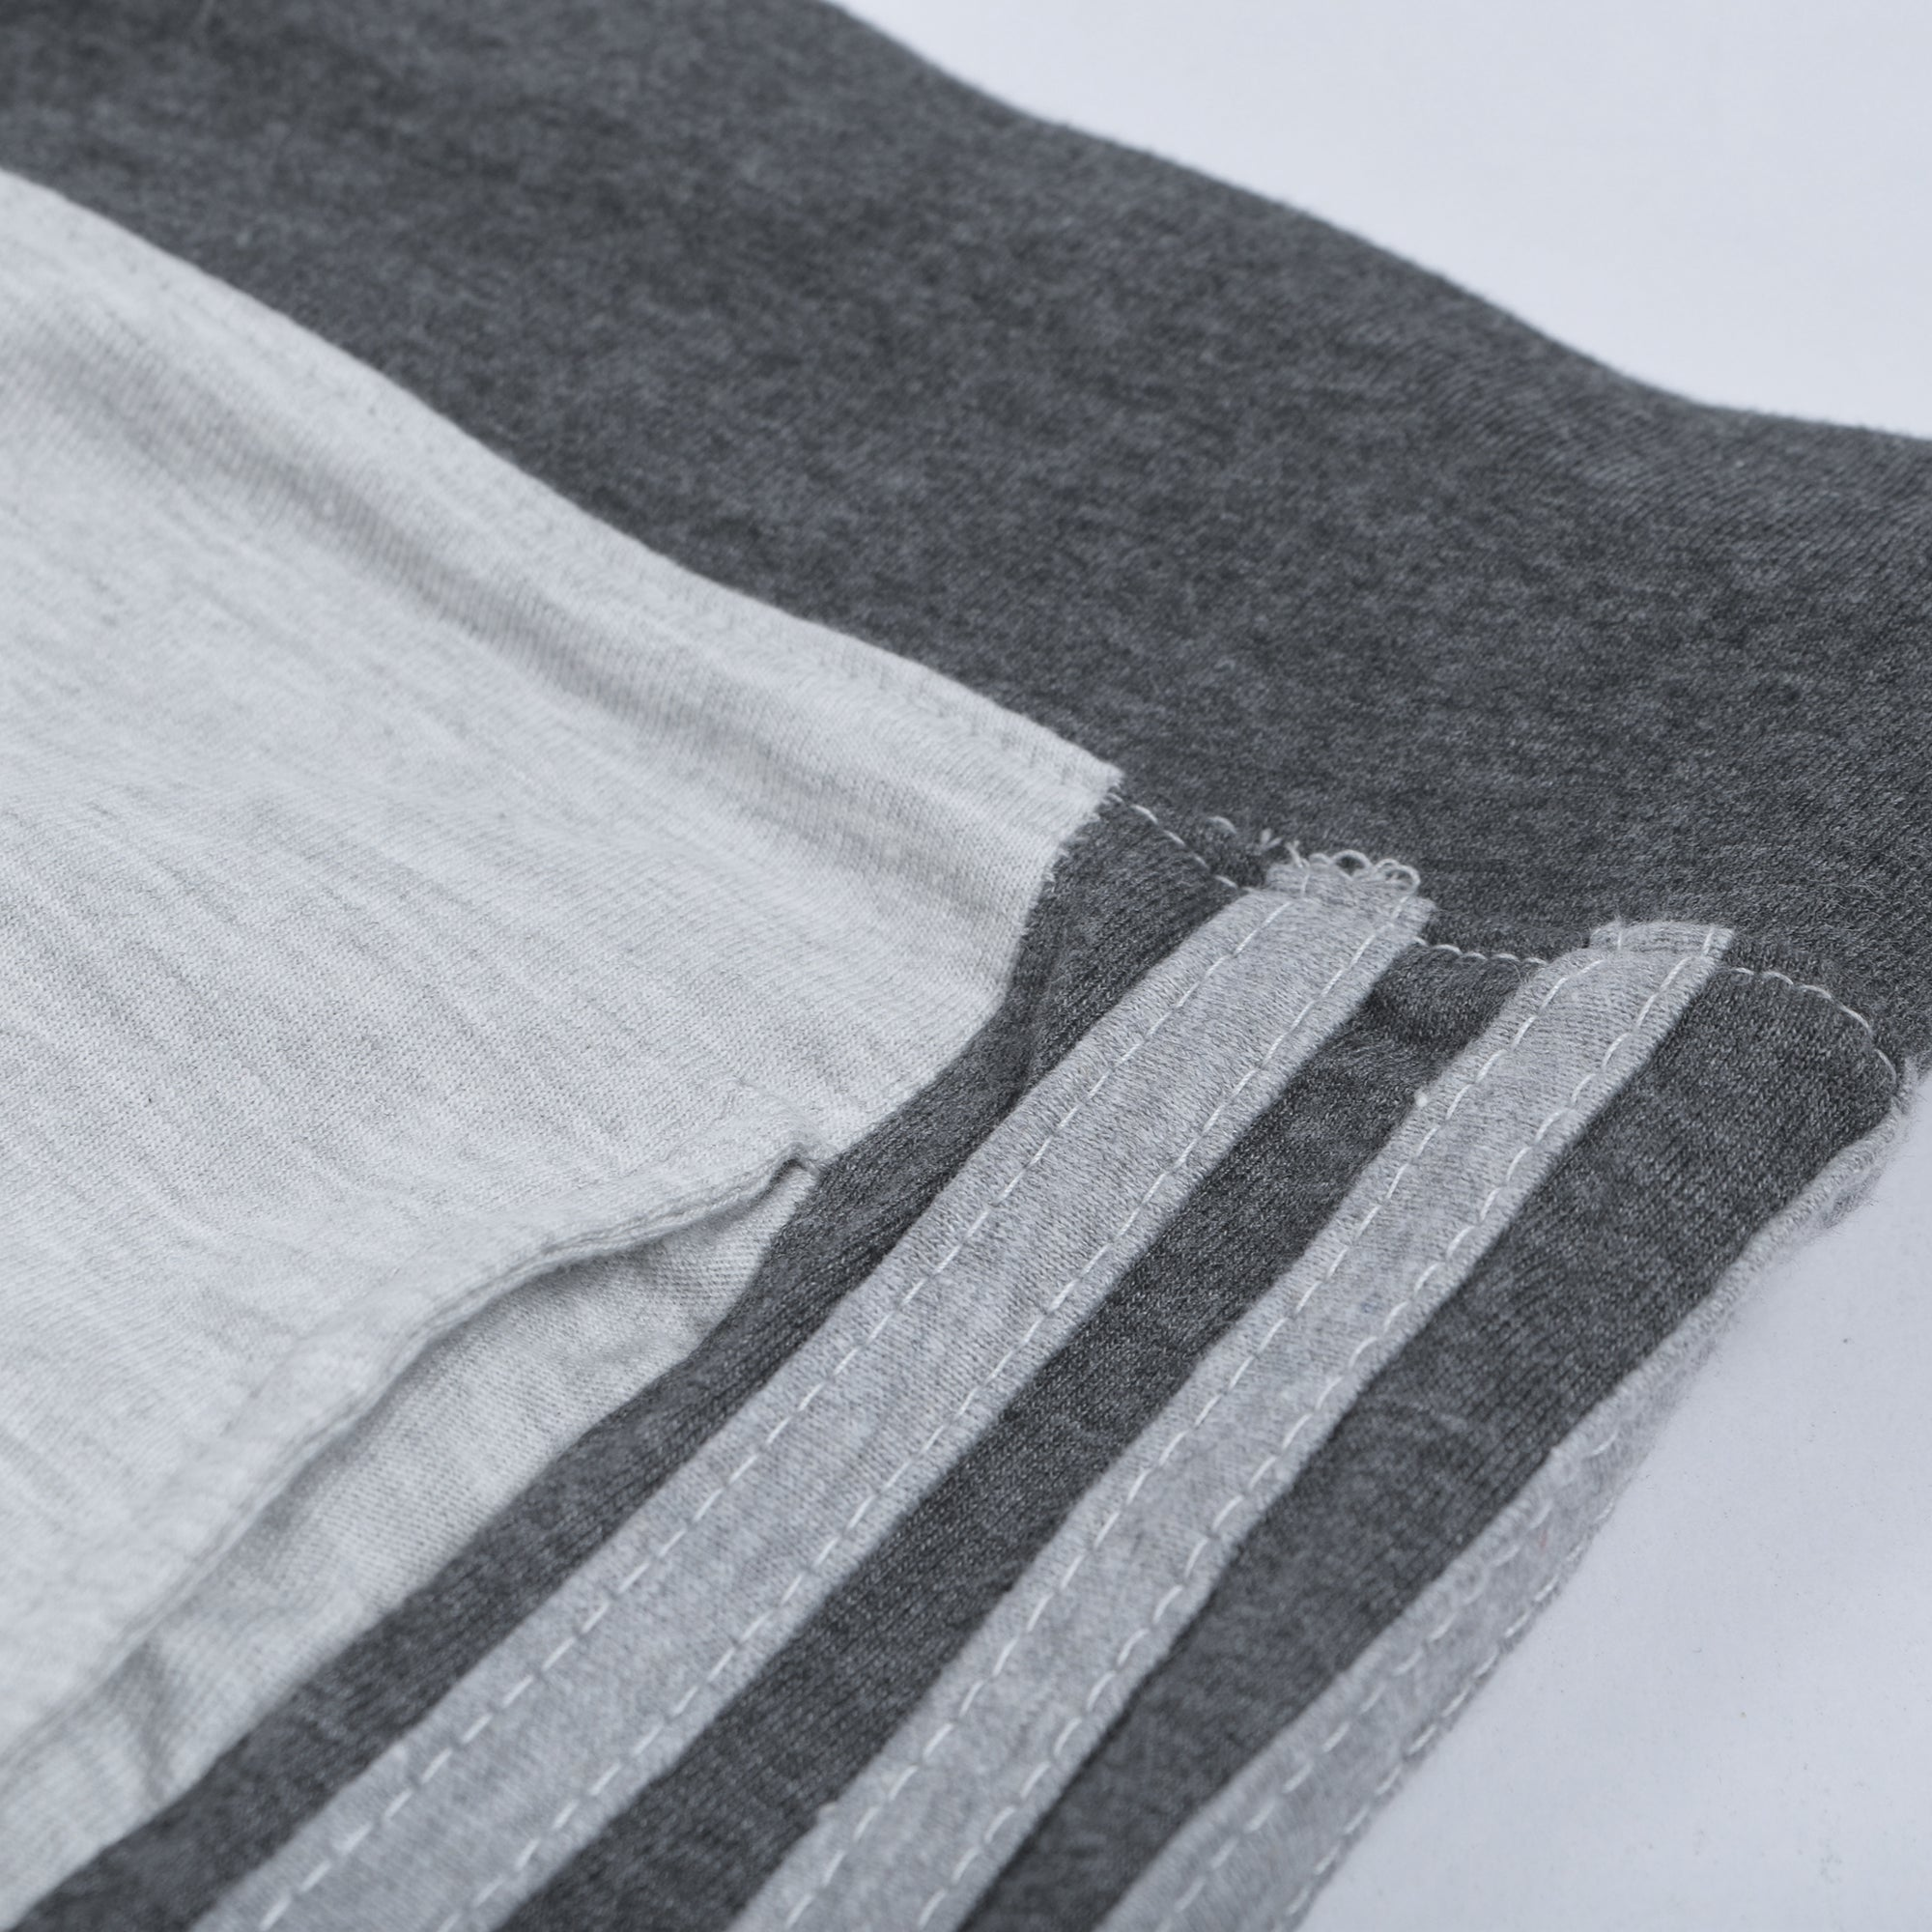 2b5de8689 Adidas Single Jersey Regular Fit Trouser For Men-Light Grey With Charcoal  Stripes-NA8793